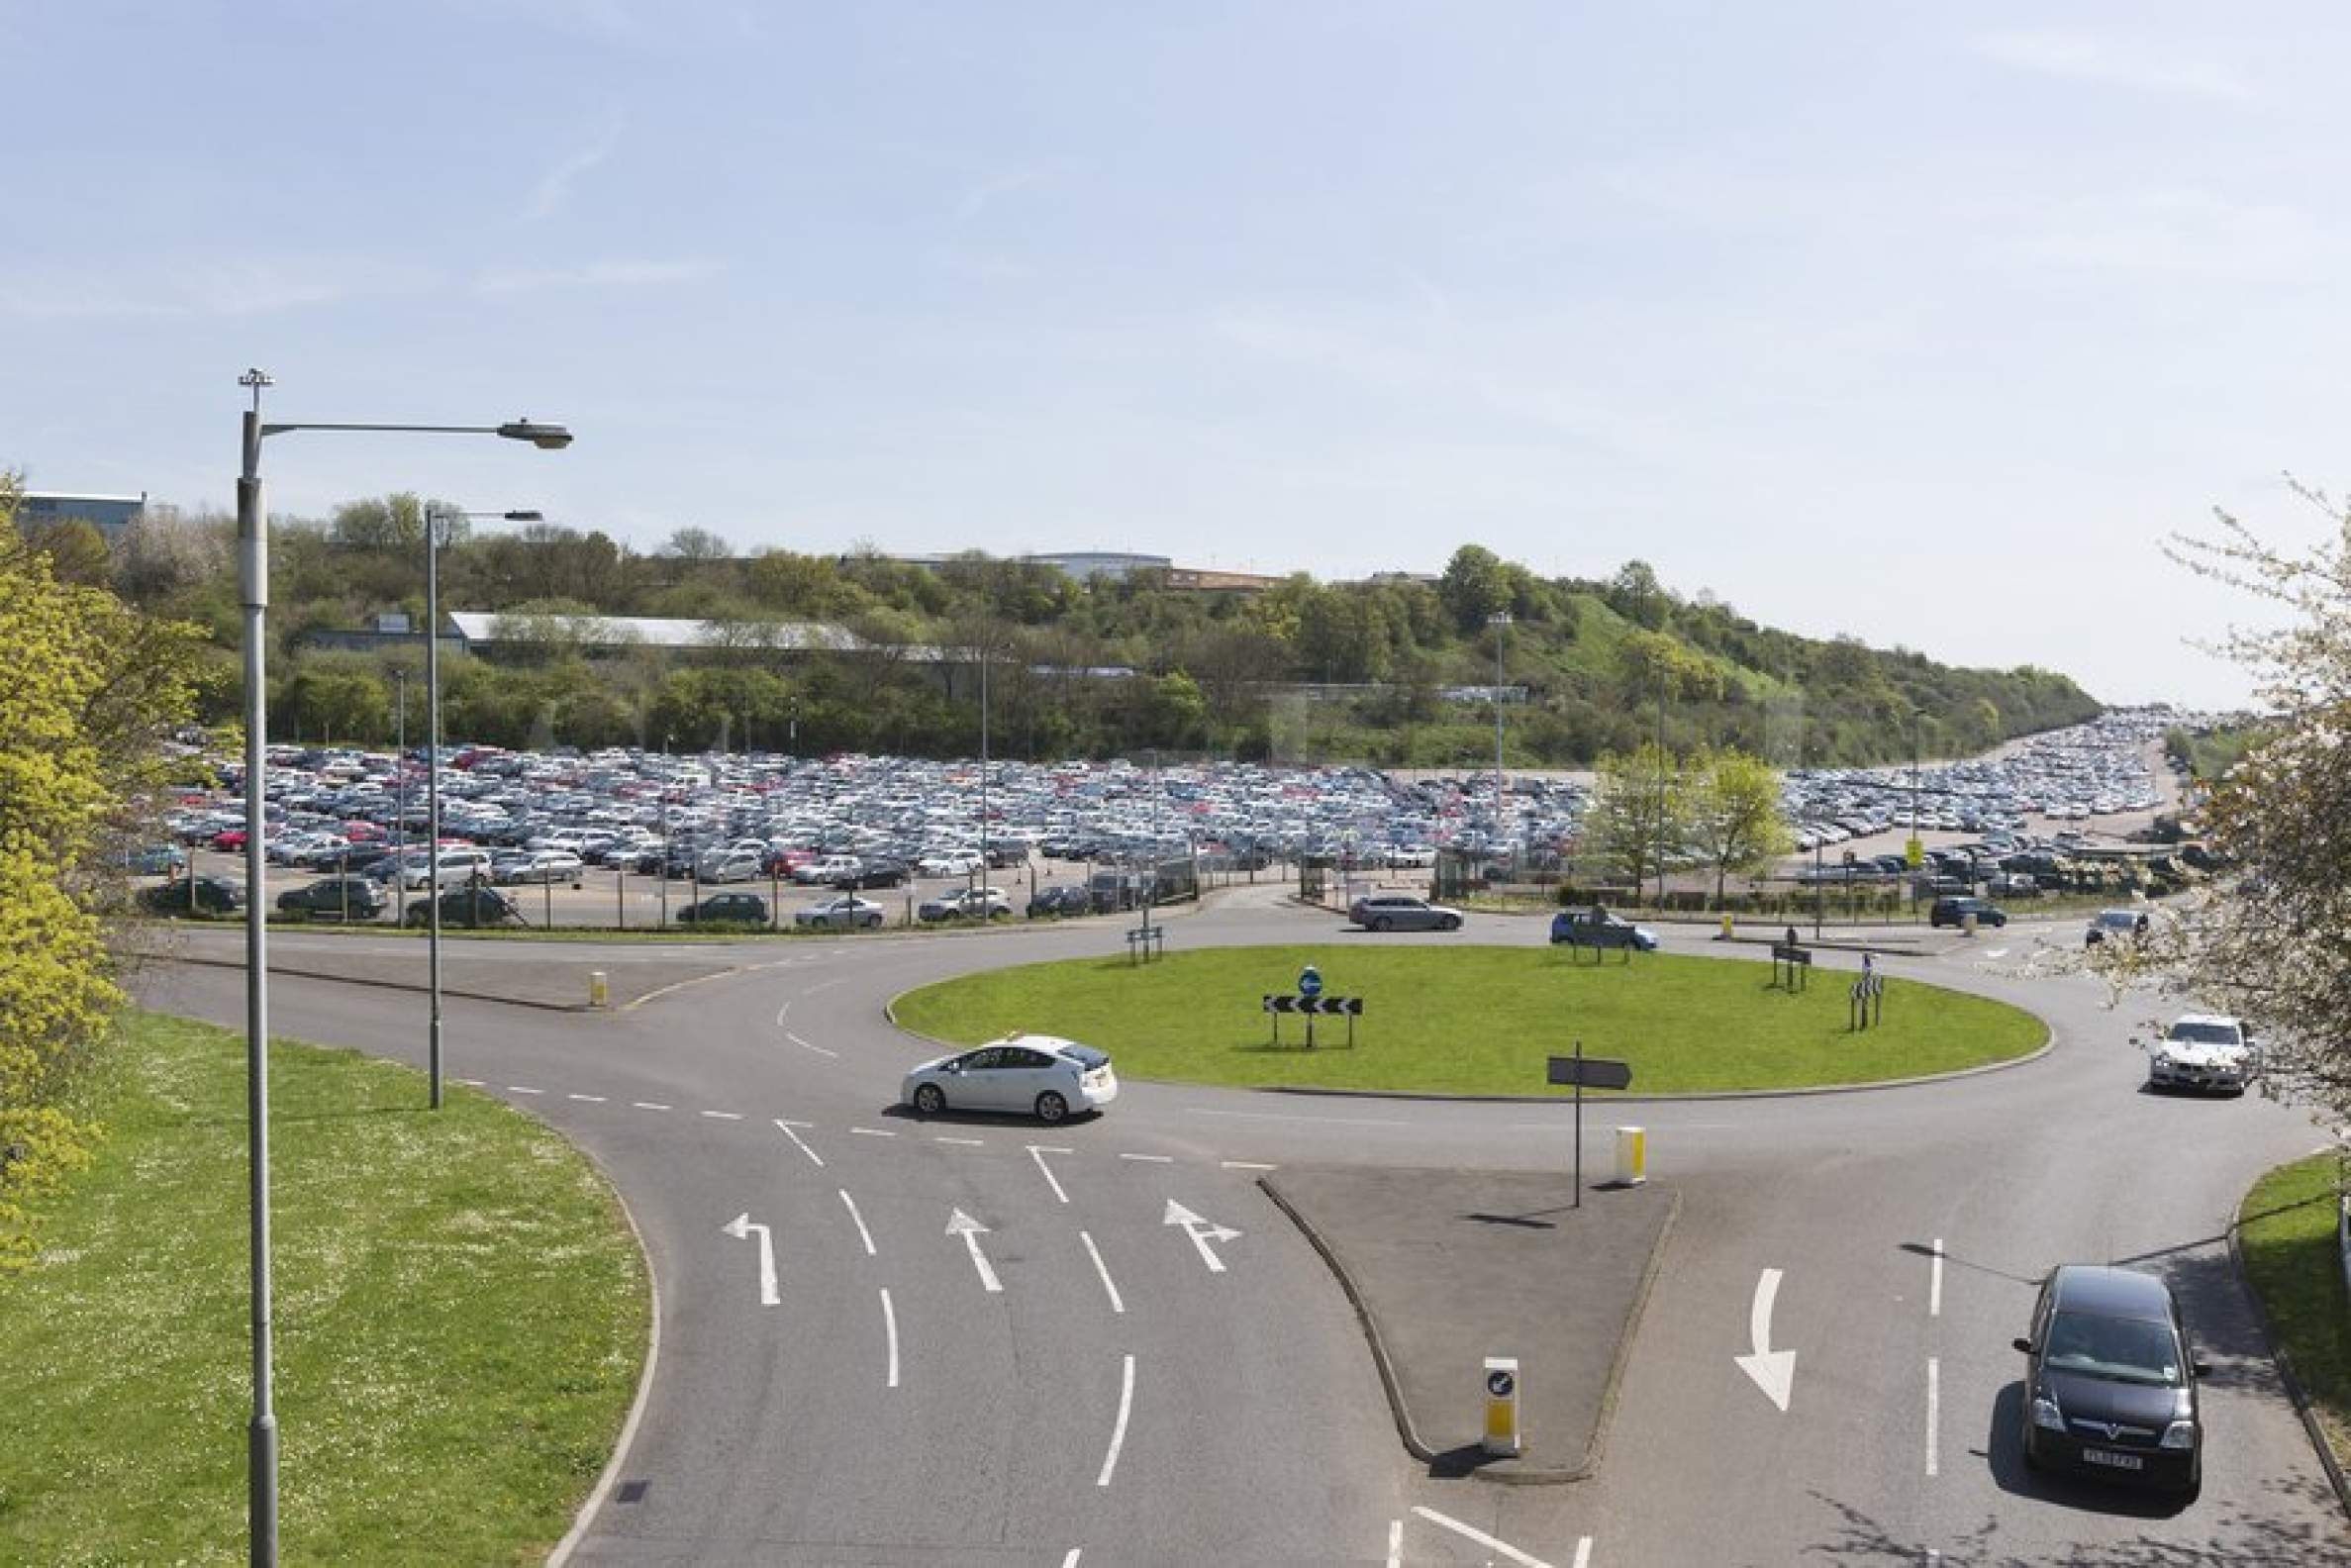 Parking spaces near London Luton Airport 2 - Stonehard